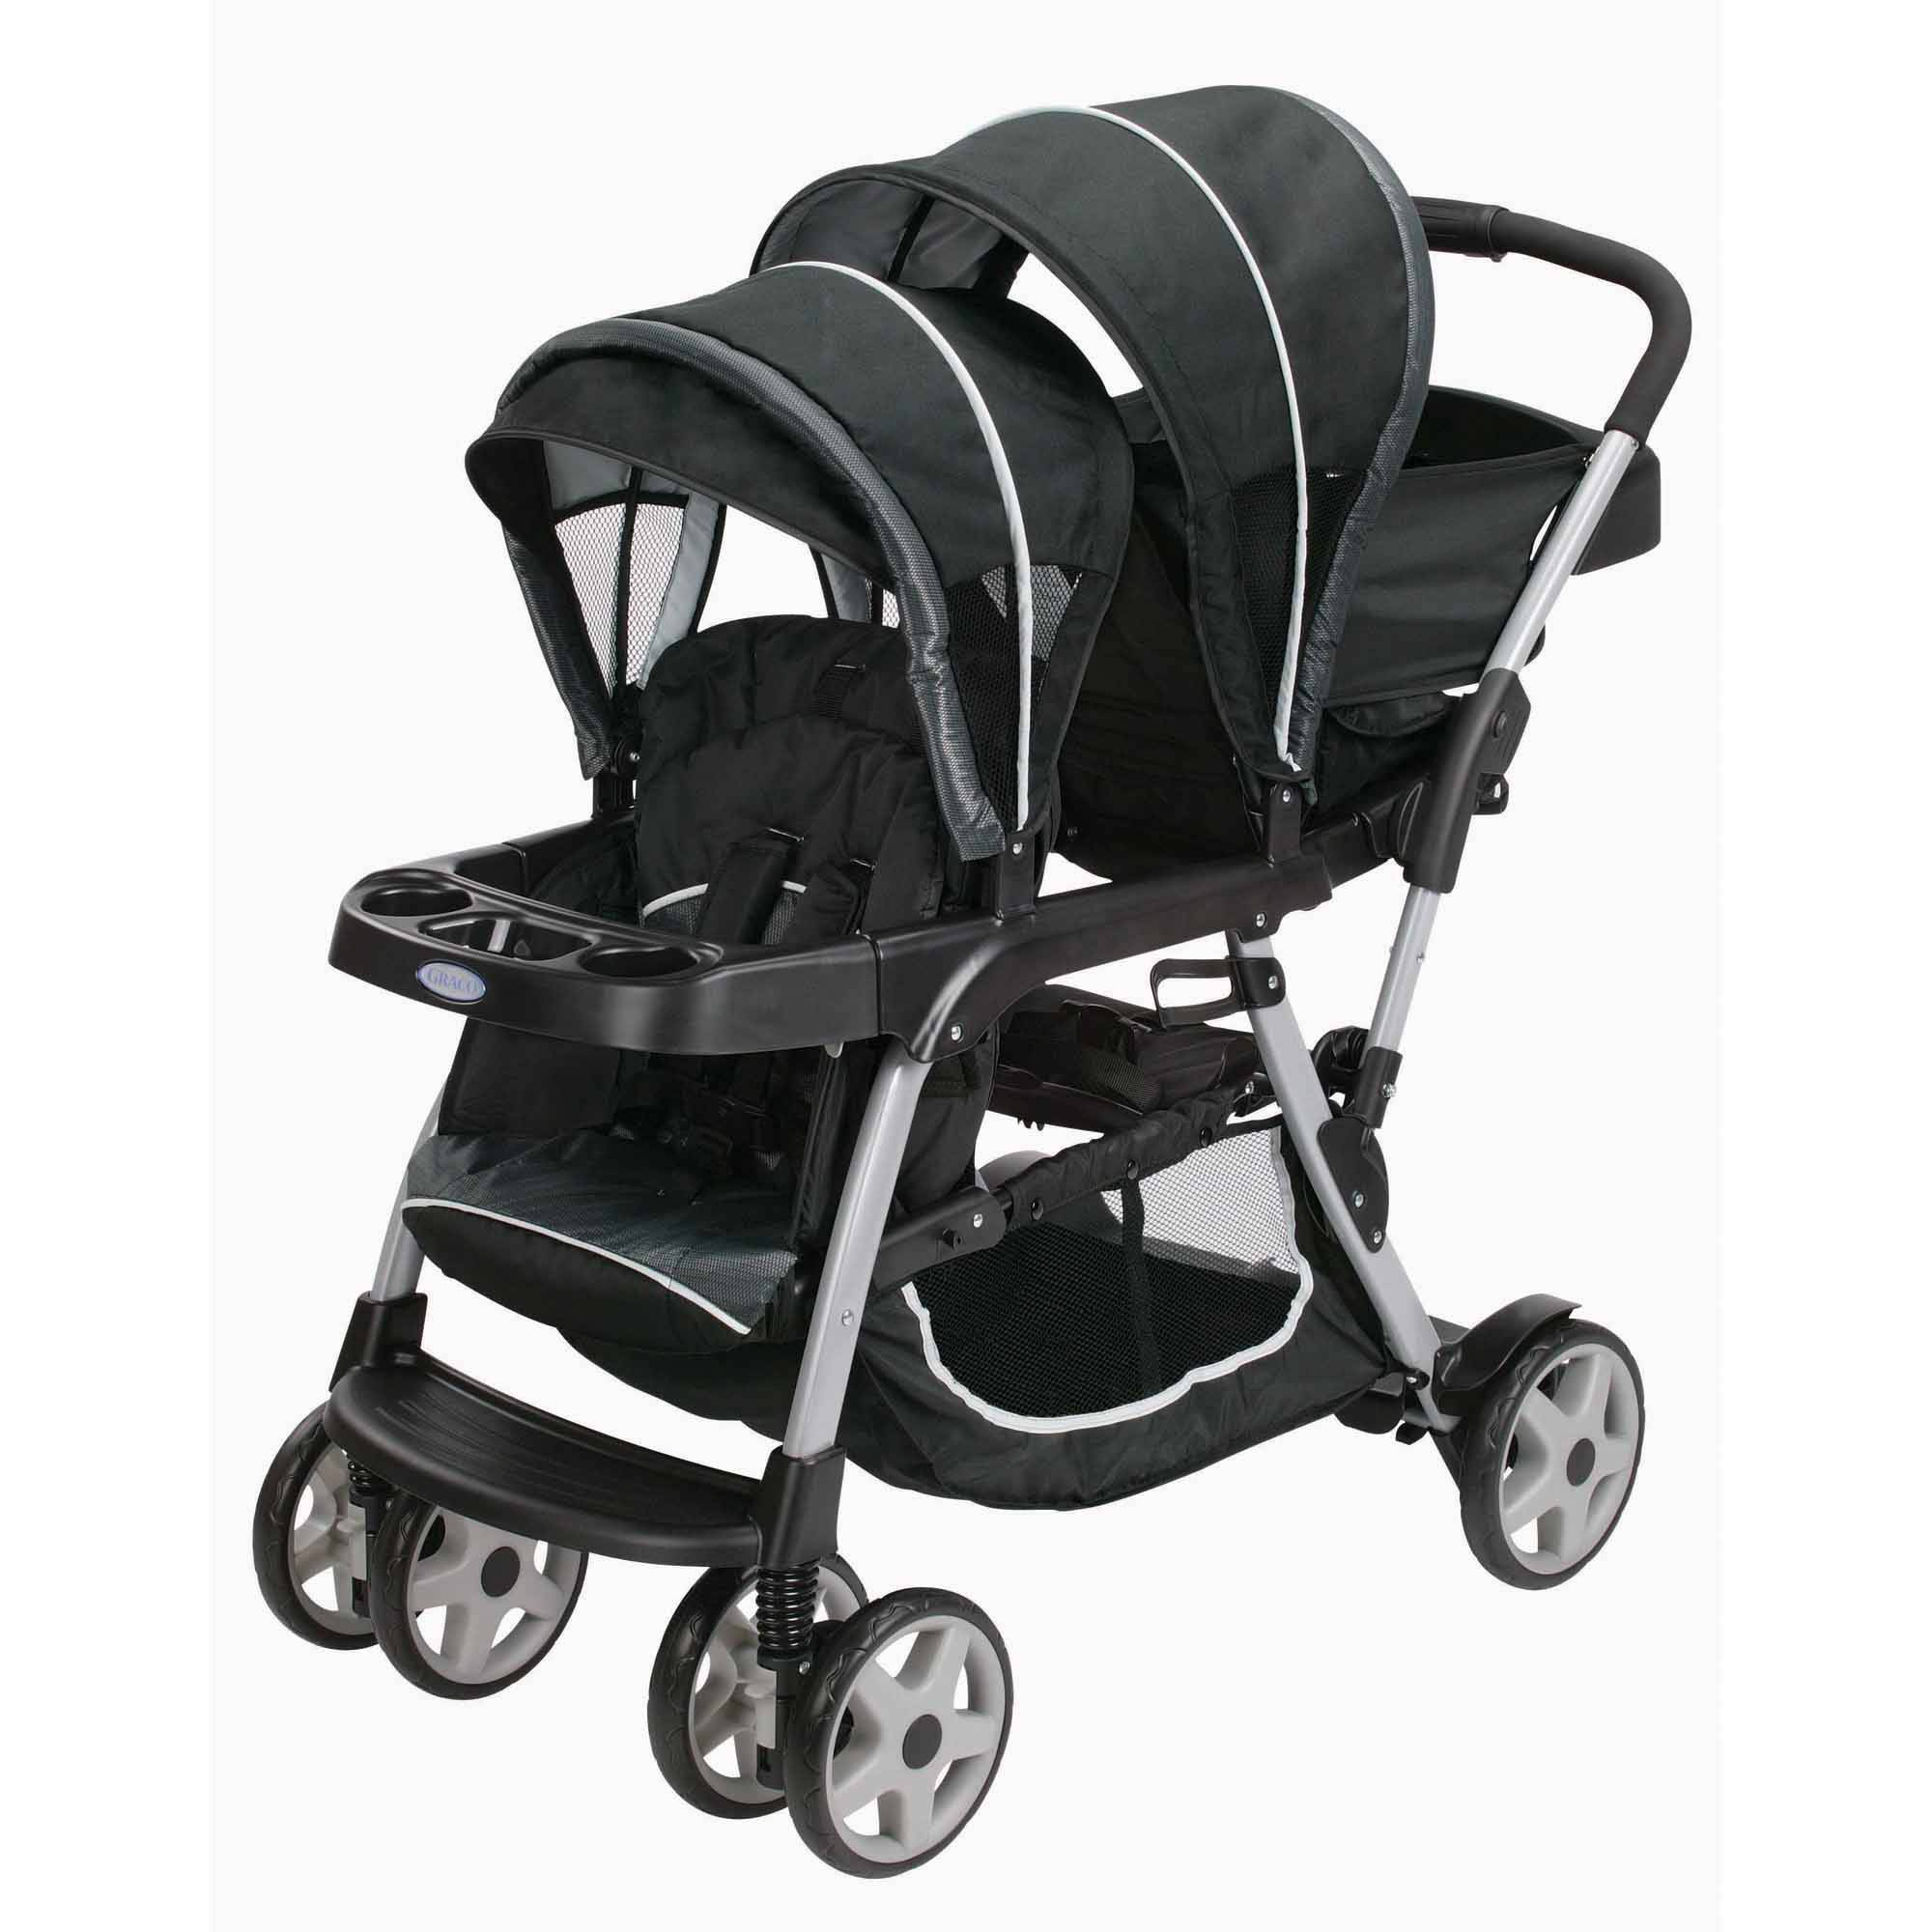 Graco Ready2Grow Click Connect LX Double Stroller, Gotham by Graco